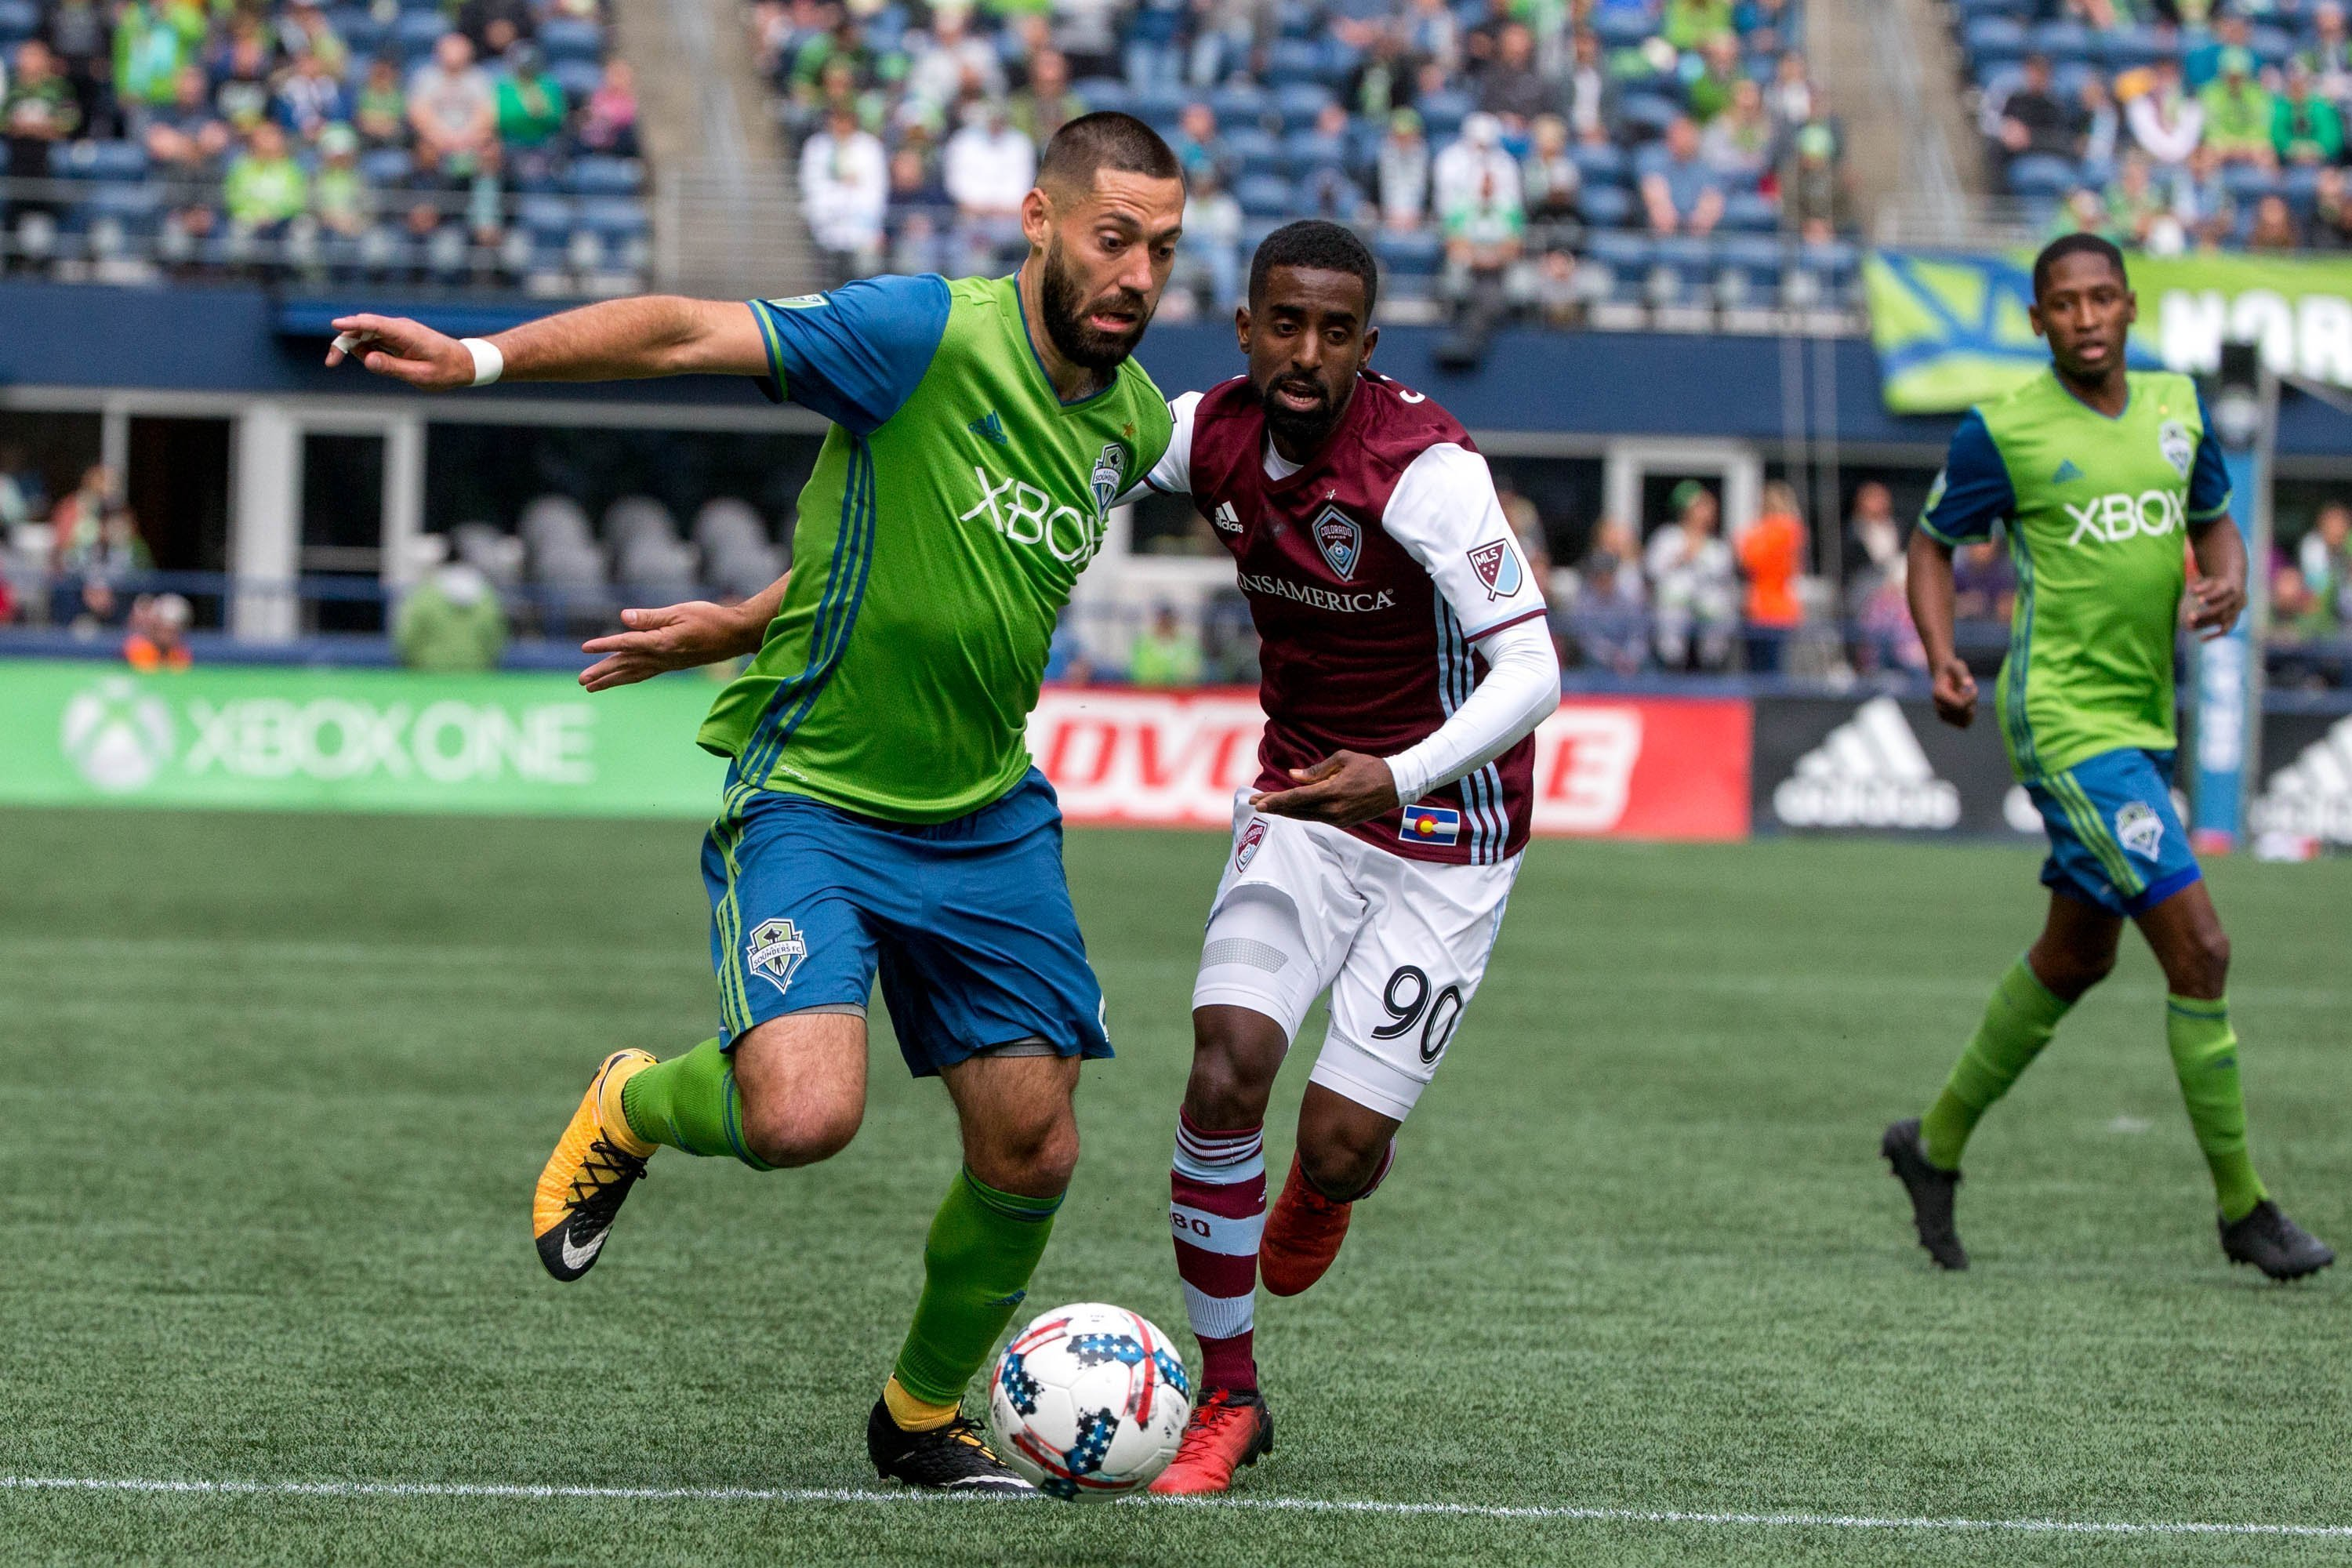 Seattle Sounders midfielder Clint Dempsey (2) takes the ball past Colorado Rapids midfielder Mohammed Saeid (90) during the first half of an MLS soccer game in Seattle on Sunday, Oct. 22, 2017. (Courtney Pedroza/The Seattle Times via AP)